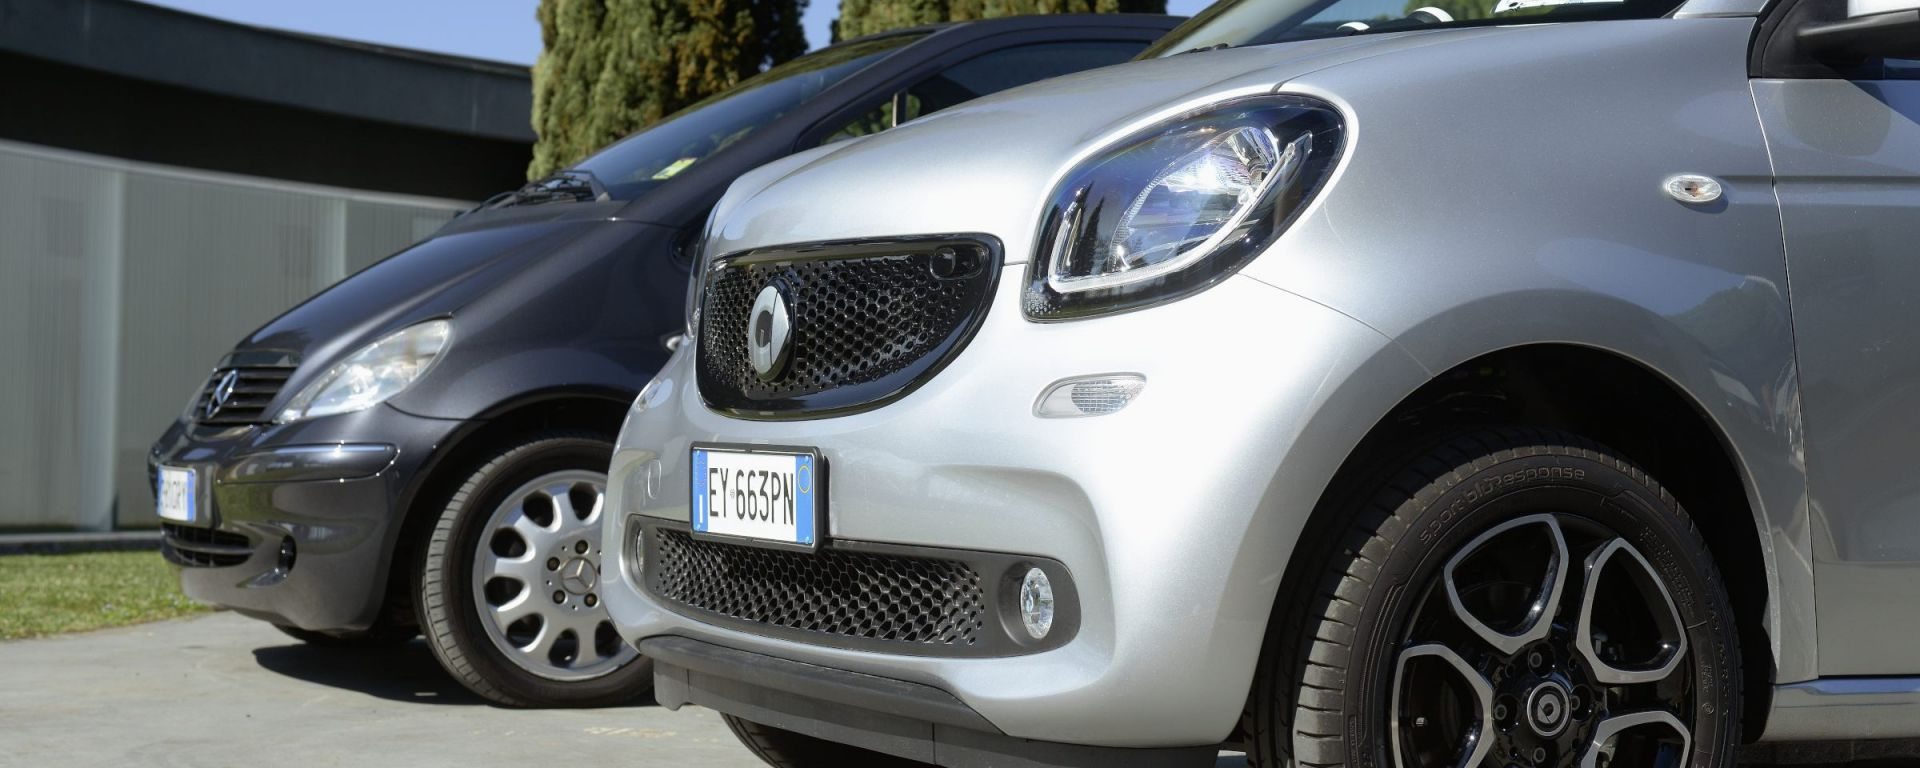 Smart forfour 2015 vs Mercedes classe A 1997